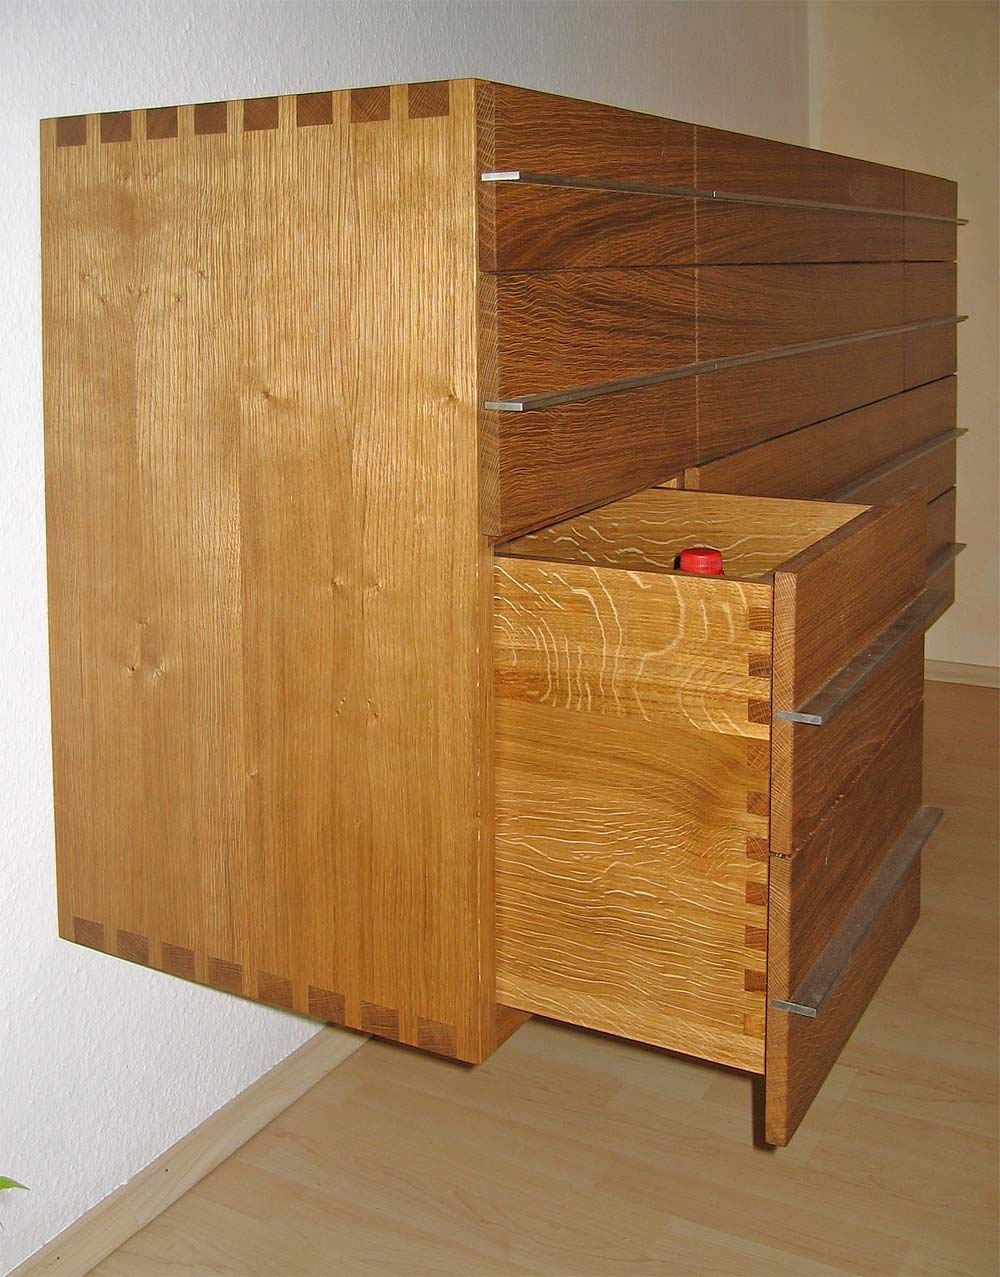 Hängesideboard in Eiche